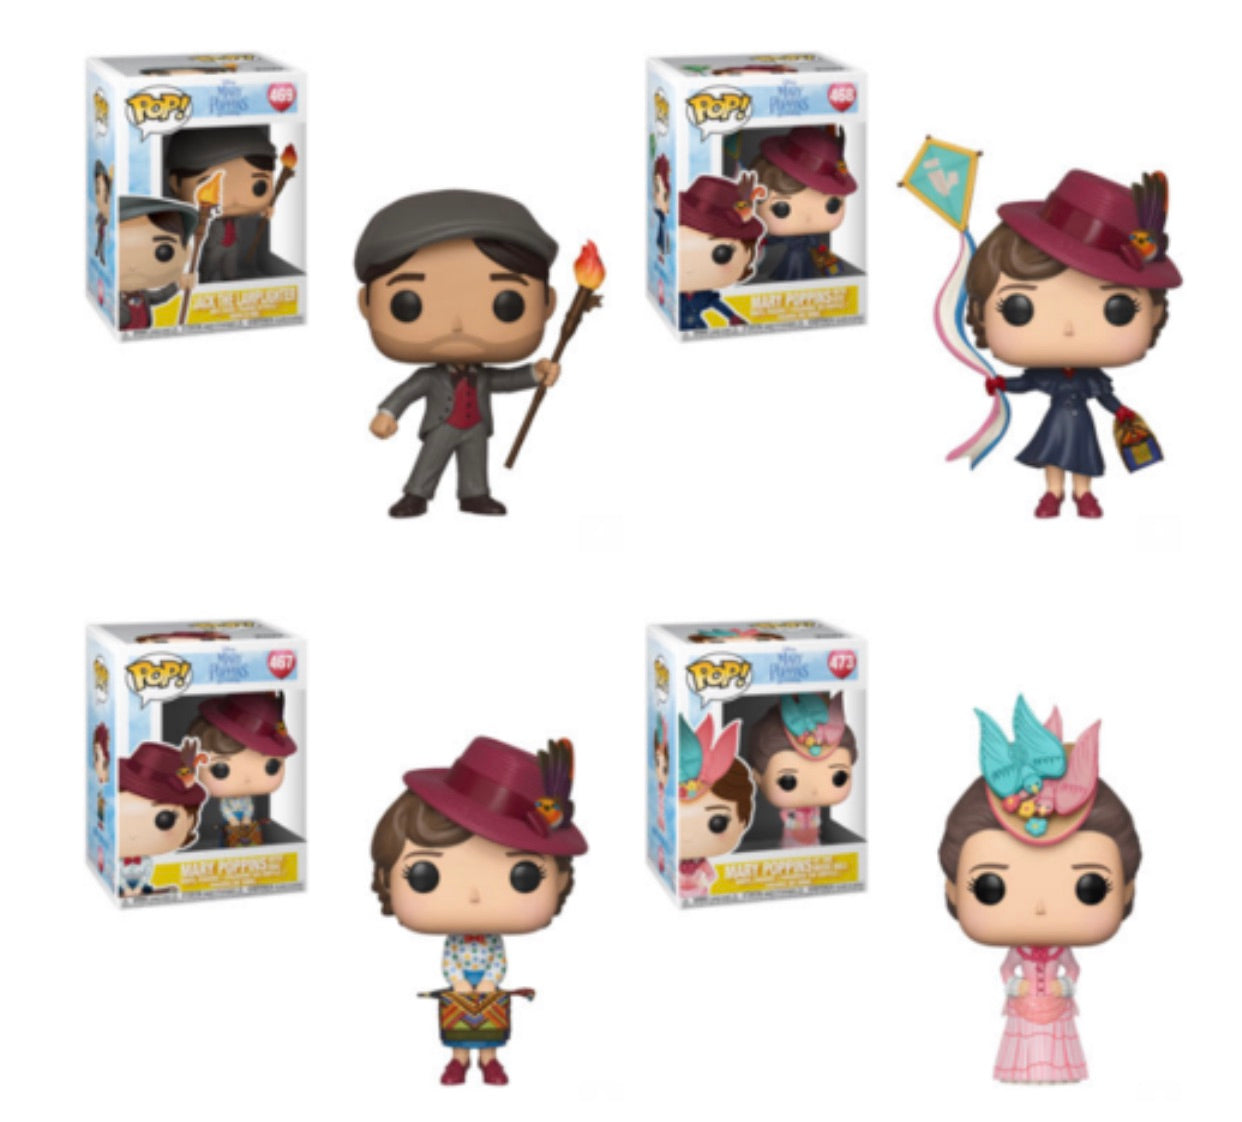 MARY POPPINS FUNKO POP! COMPLETE SET OF 4